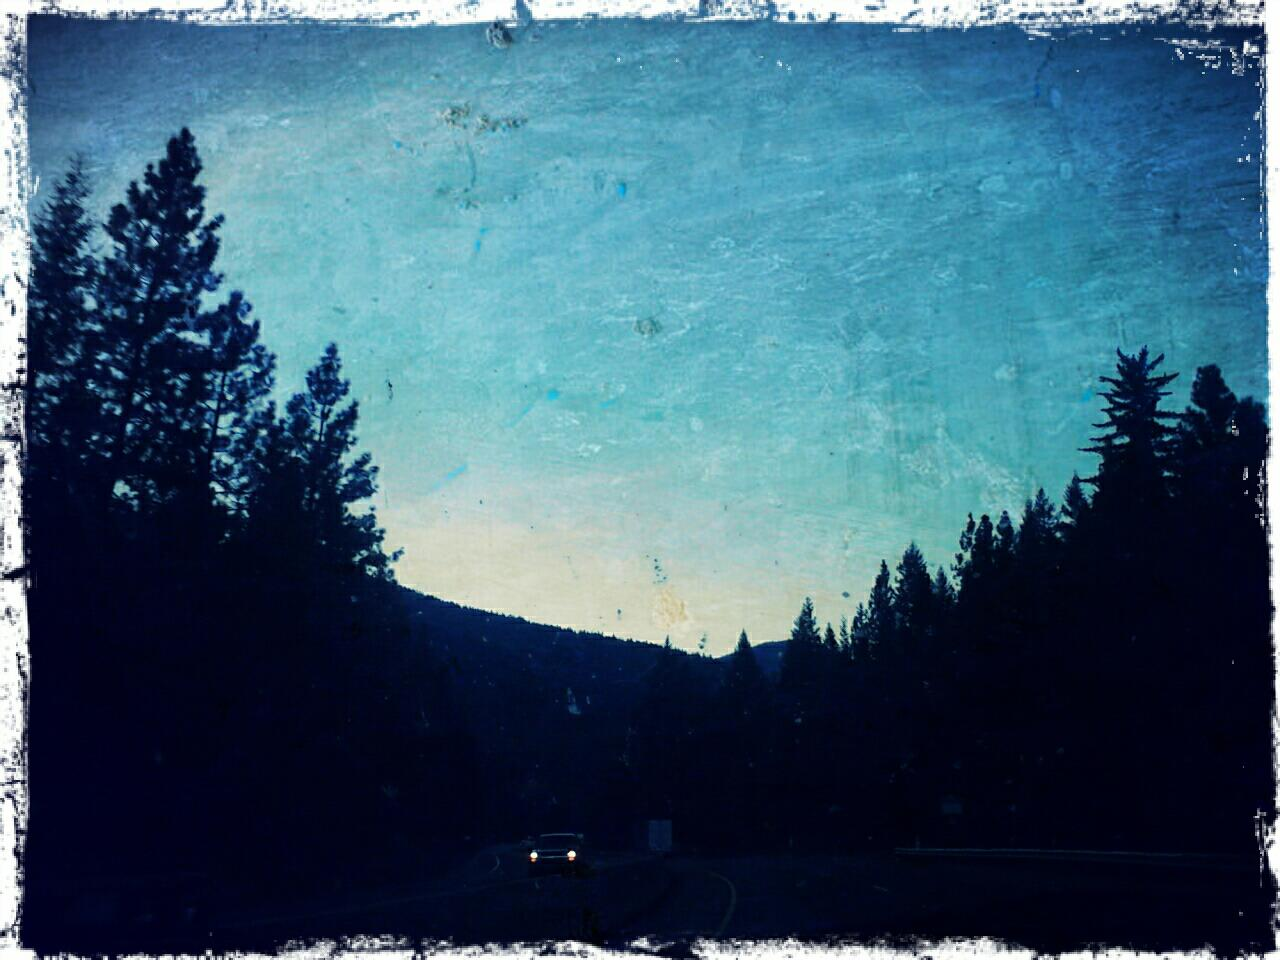 I took this photo from the van during Red Eye Junction's first show on our Oregon  mini tour on Sept 8, 2012. We were en route to Cottage Grove after the gig and we spent that night in the van by a gorgeous, secluded river. That was the trip where I learned to actually sing.